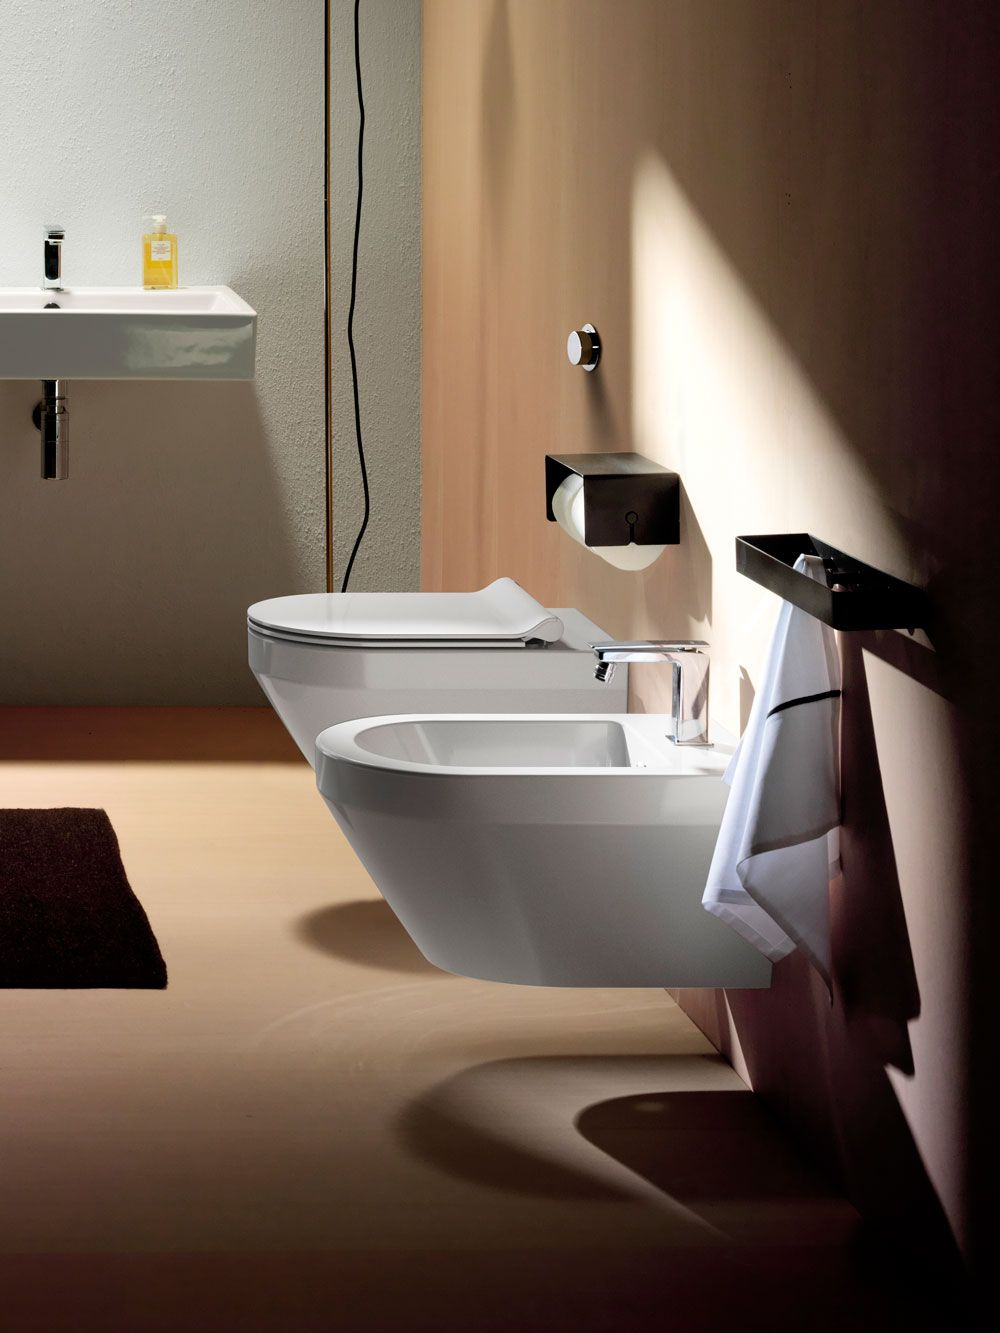 GSI ceramic | KUBE Collections wc \u0026 Bidet | Kube | Pinterest